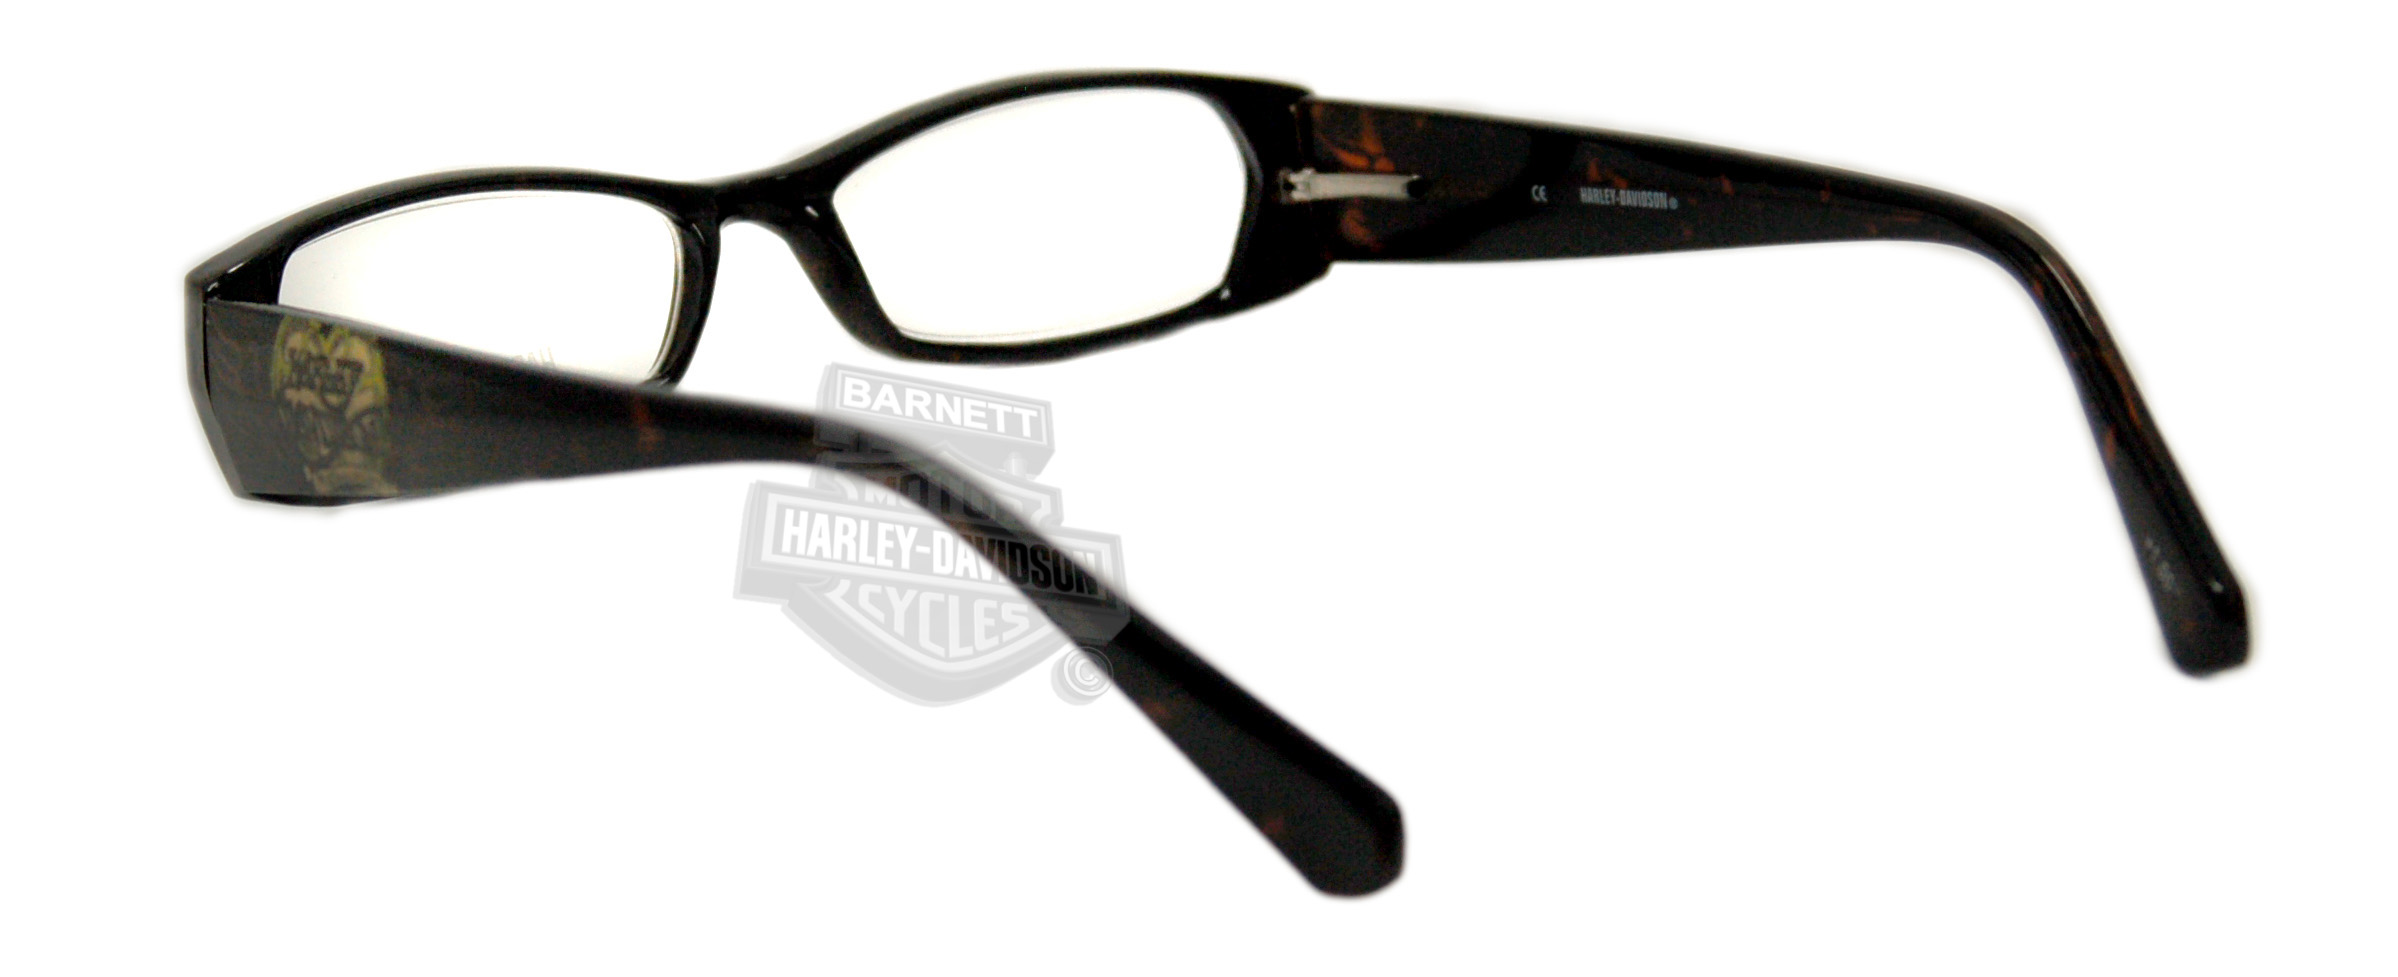 harley davidson hd3004to tortoise frame reading glasses by viva eyewear hd3004to